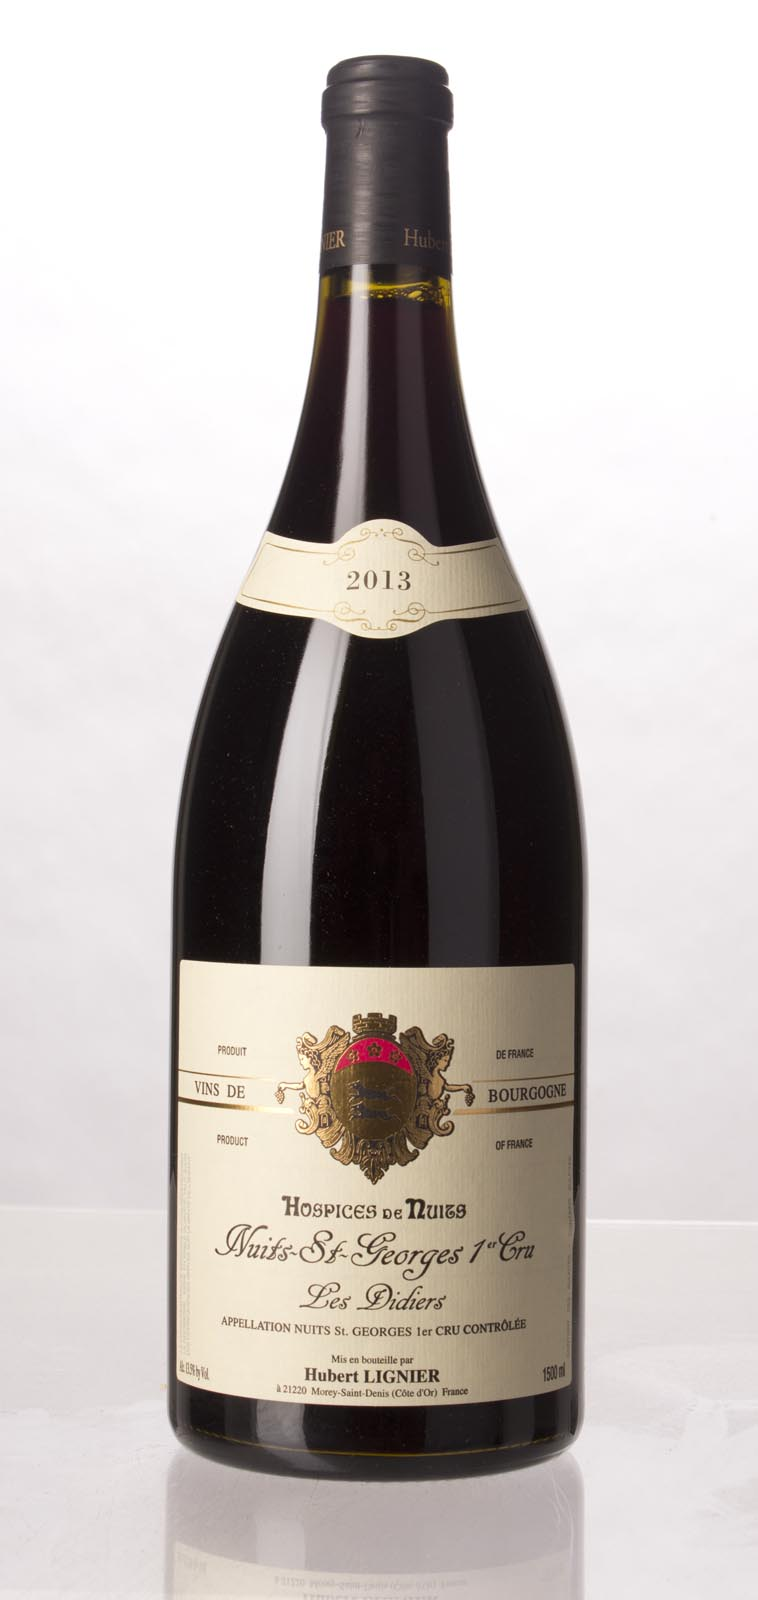 Domaine Hubert Lignier Nuits St. Georges les Didiers Hospices de Nuits 2013, 1.5L () from The BPW - Merchants of rare and fine wines.